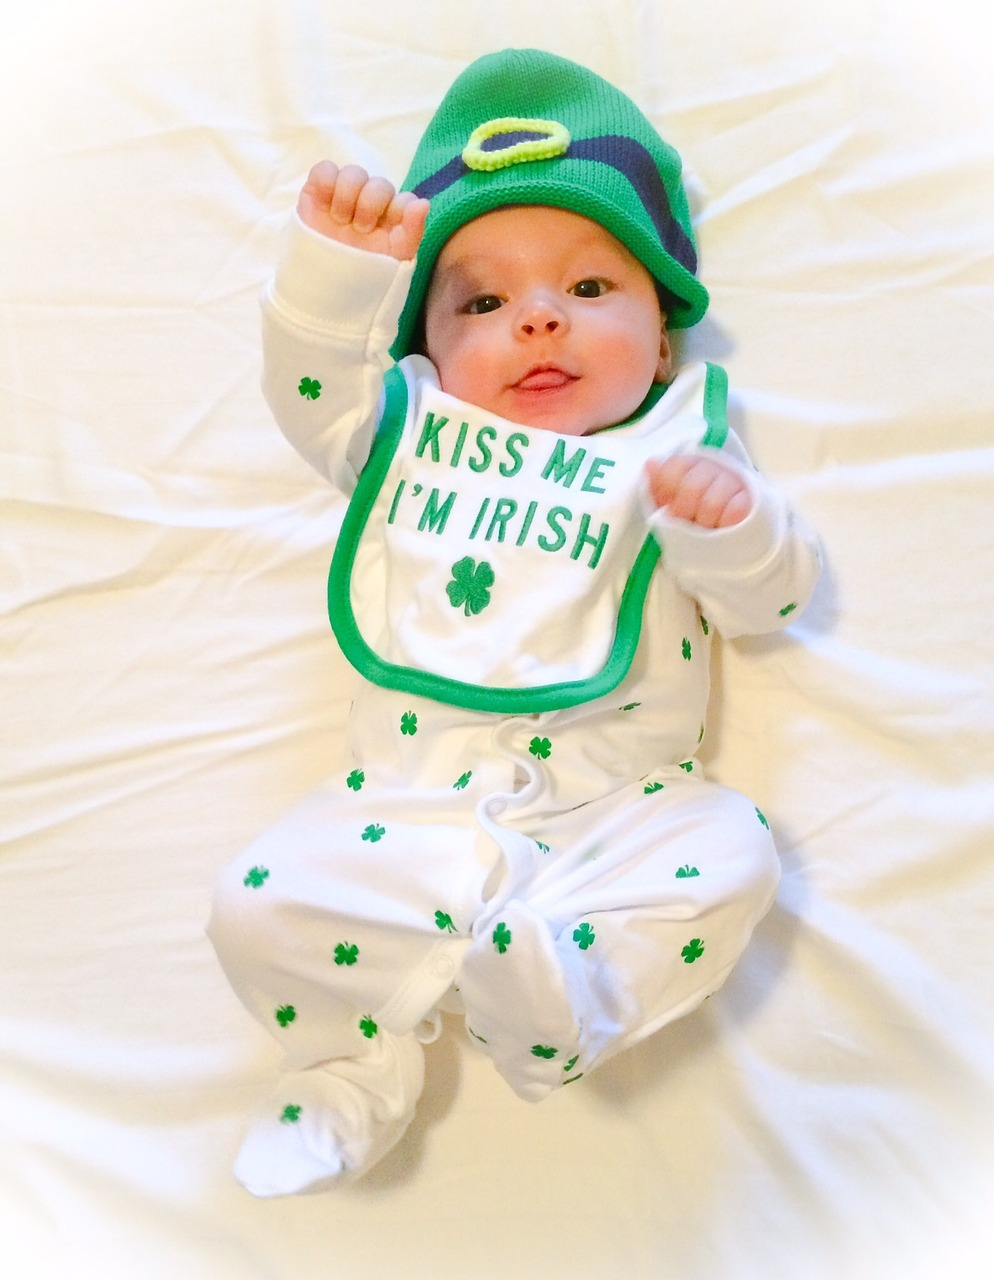 St. Patrick's Day, costumes for babies, kiss me I'm Irish, Parades